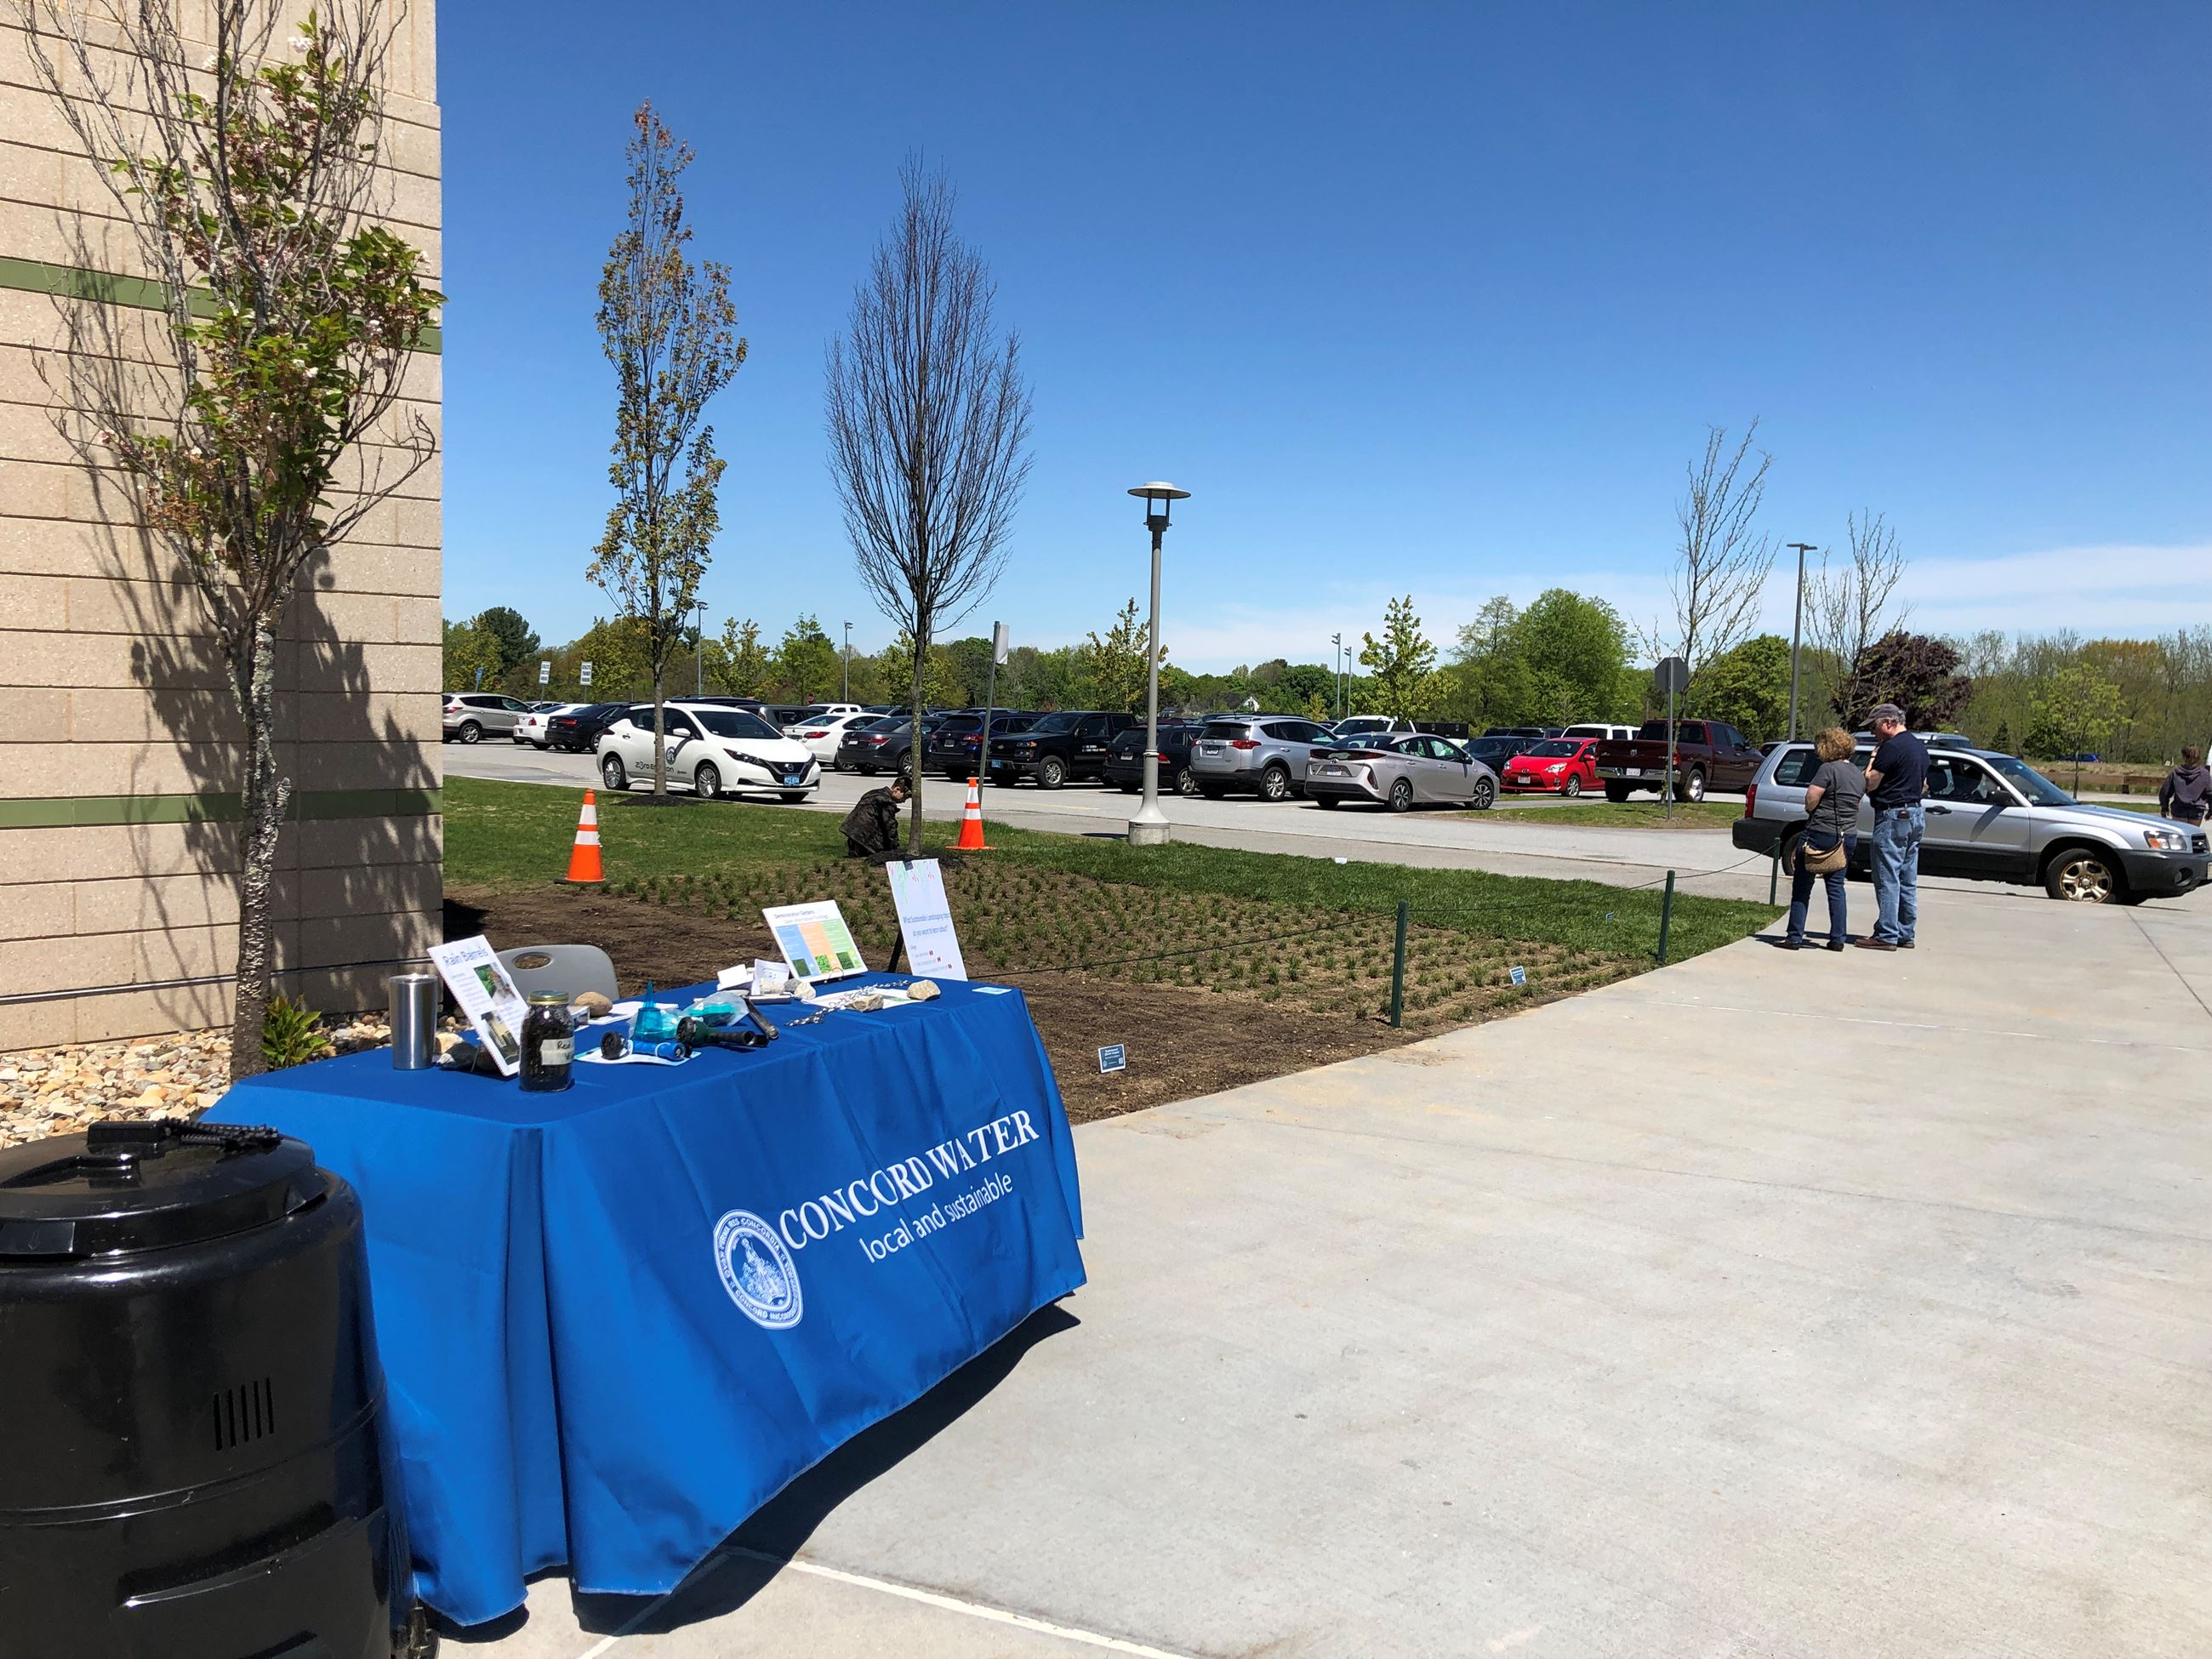 2019-05-18 Sustainable Landscaping Fair Table